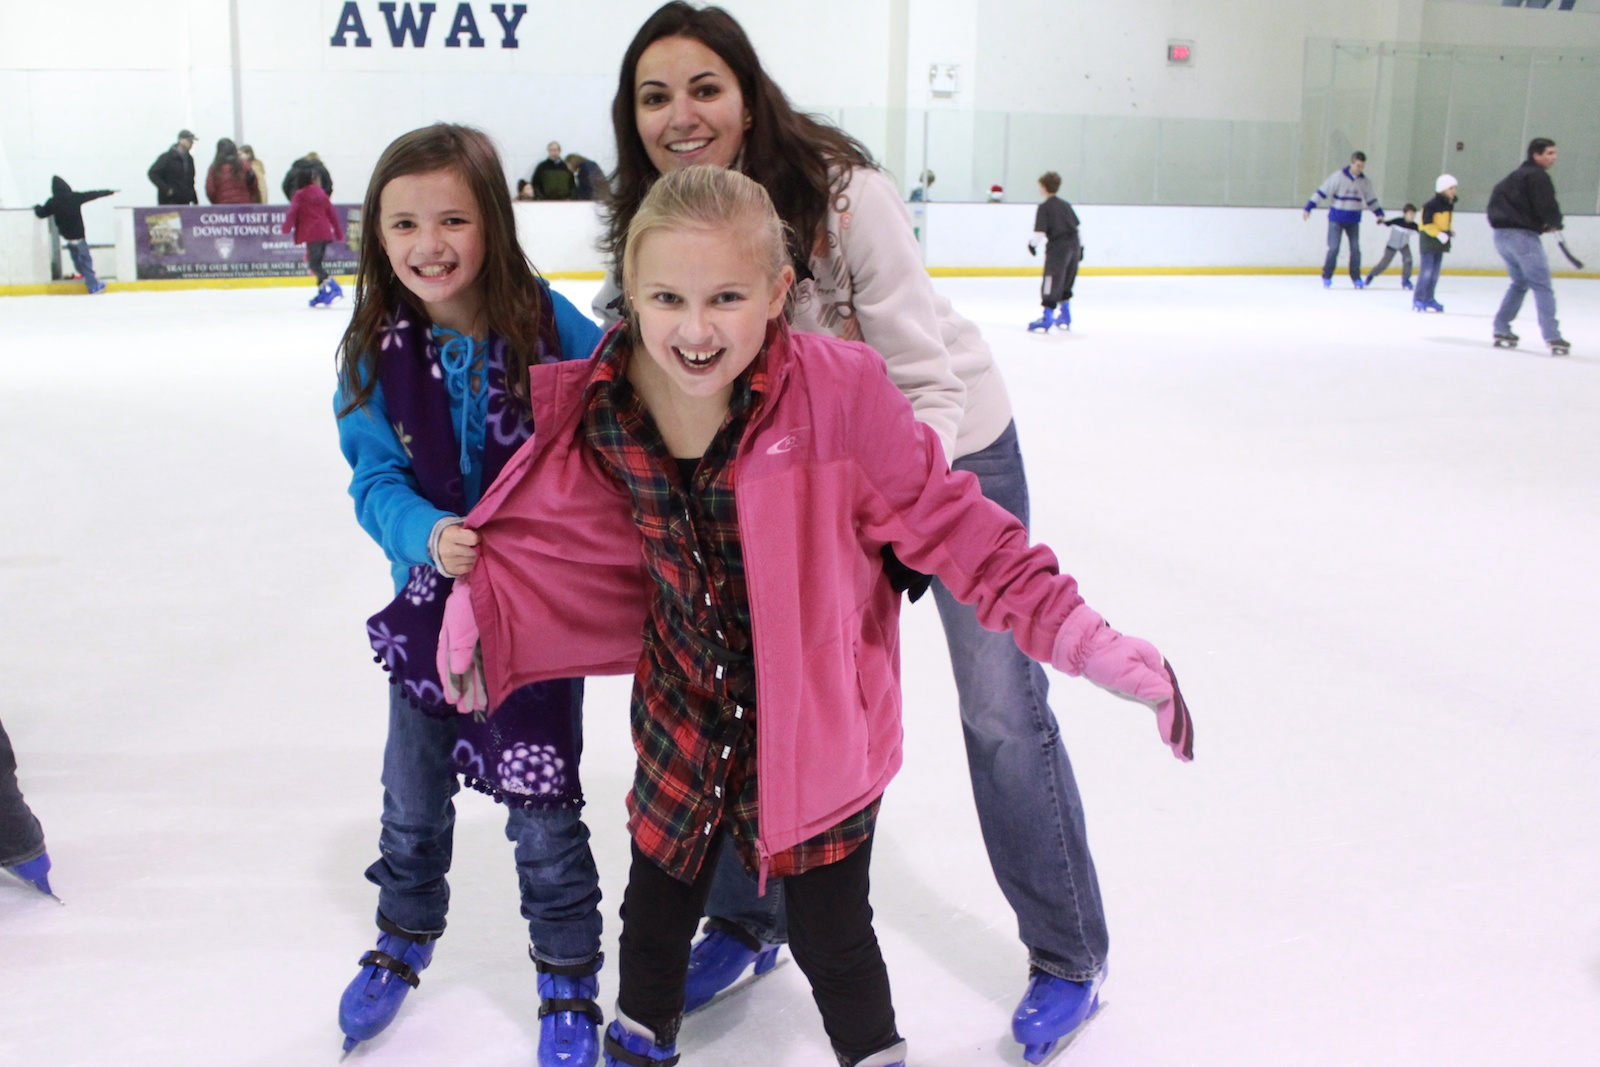 Mrs. Spicar is ice skating with our Taekwondo Karate students, Miss VanTassle and Miss Popovitch.